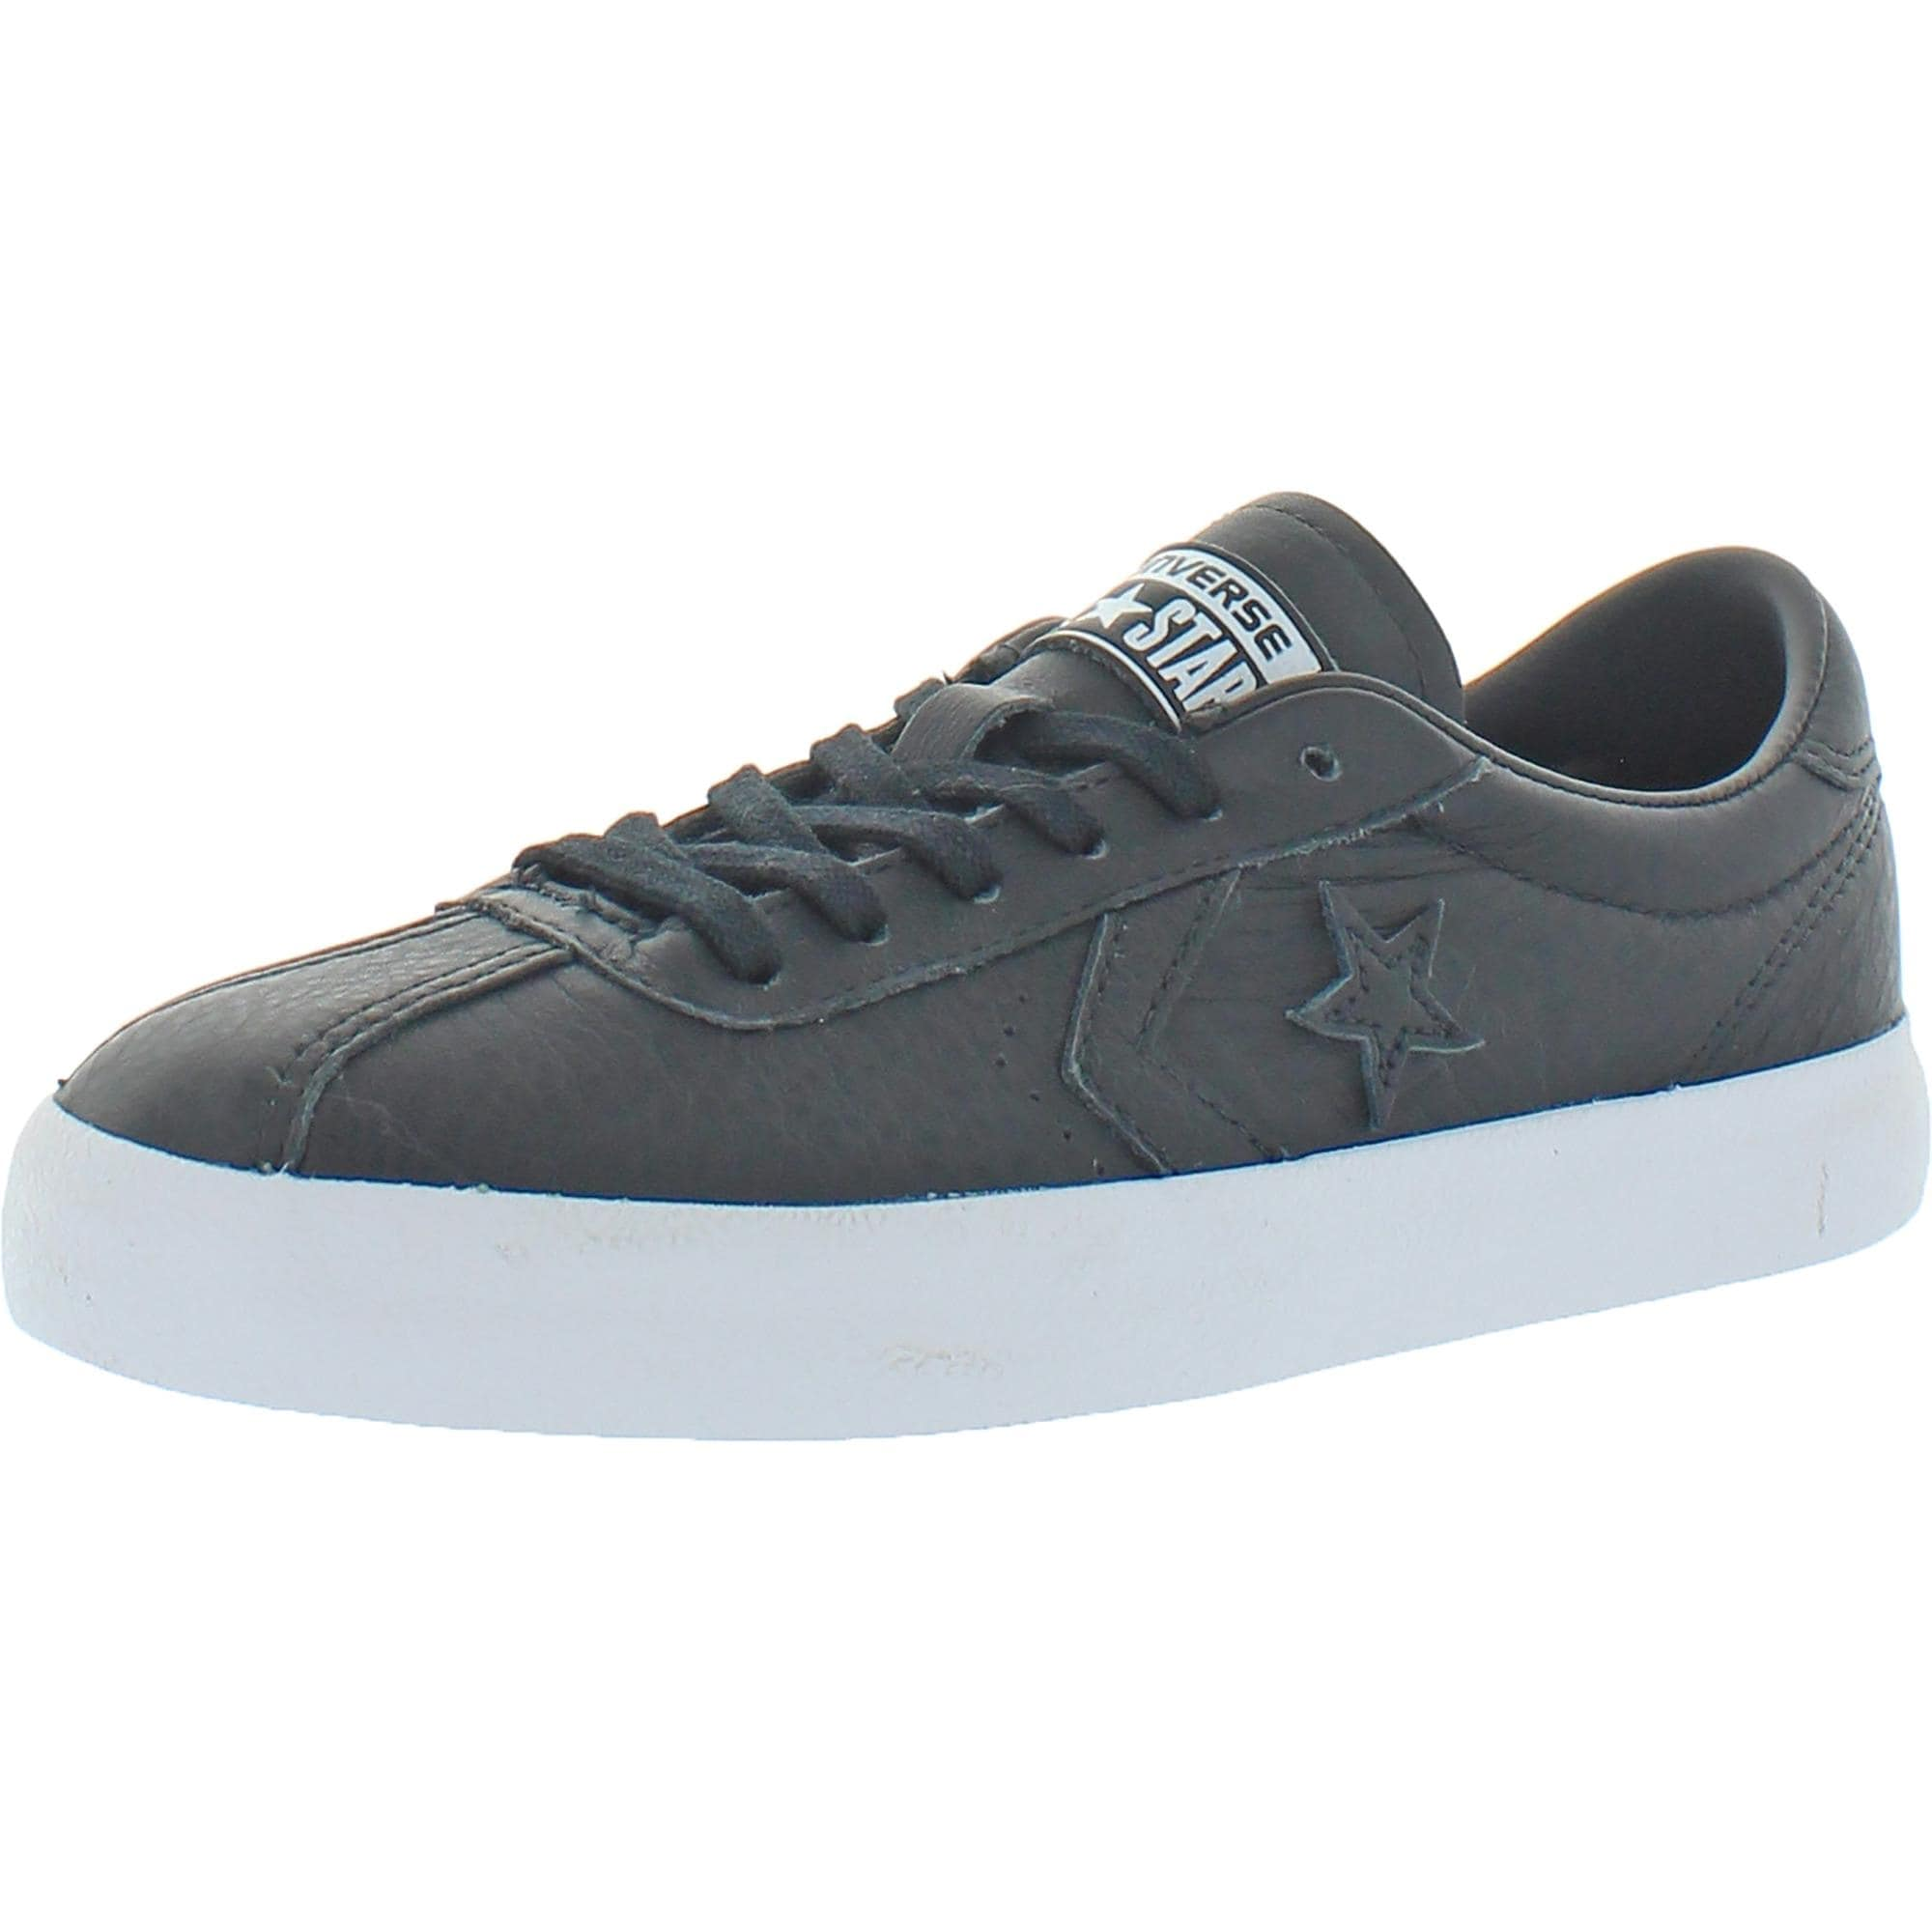 Converse Breakpoint Ox Leather Retro Skateboarding Fashion Court Sneakers